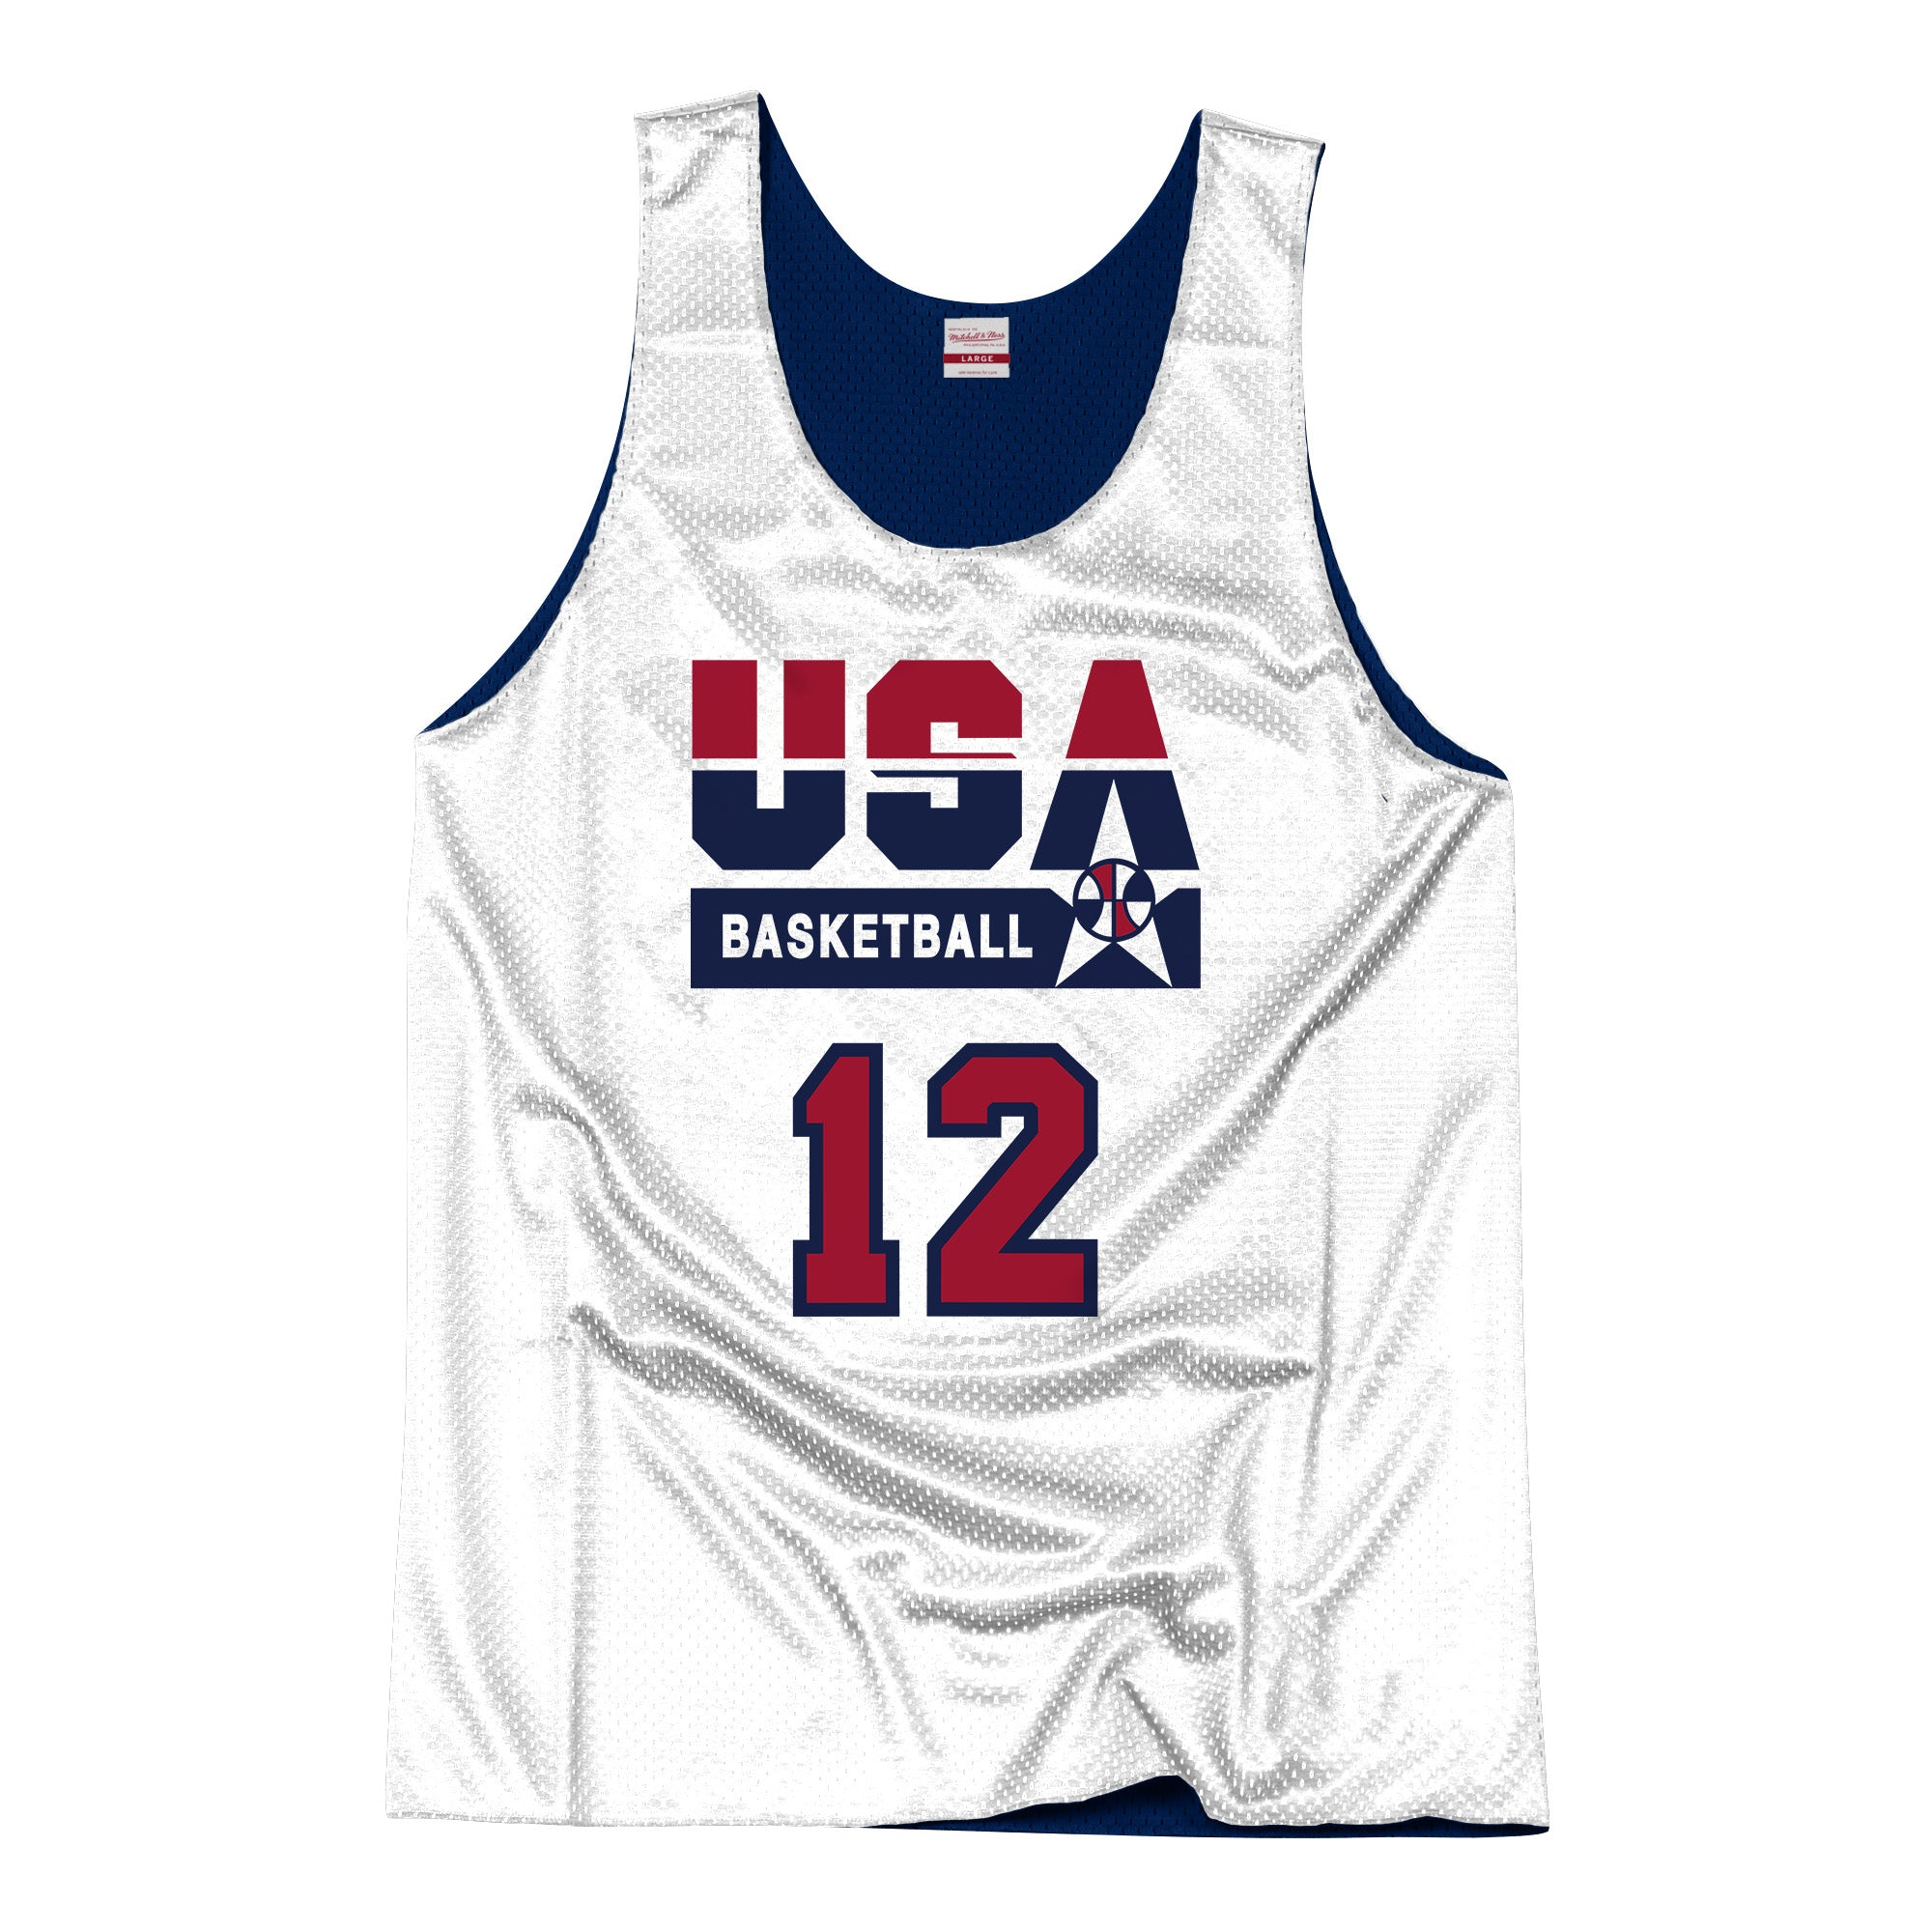 Mitchell & Ness USA '92 Basketball John Stockton Reversible Jersey